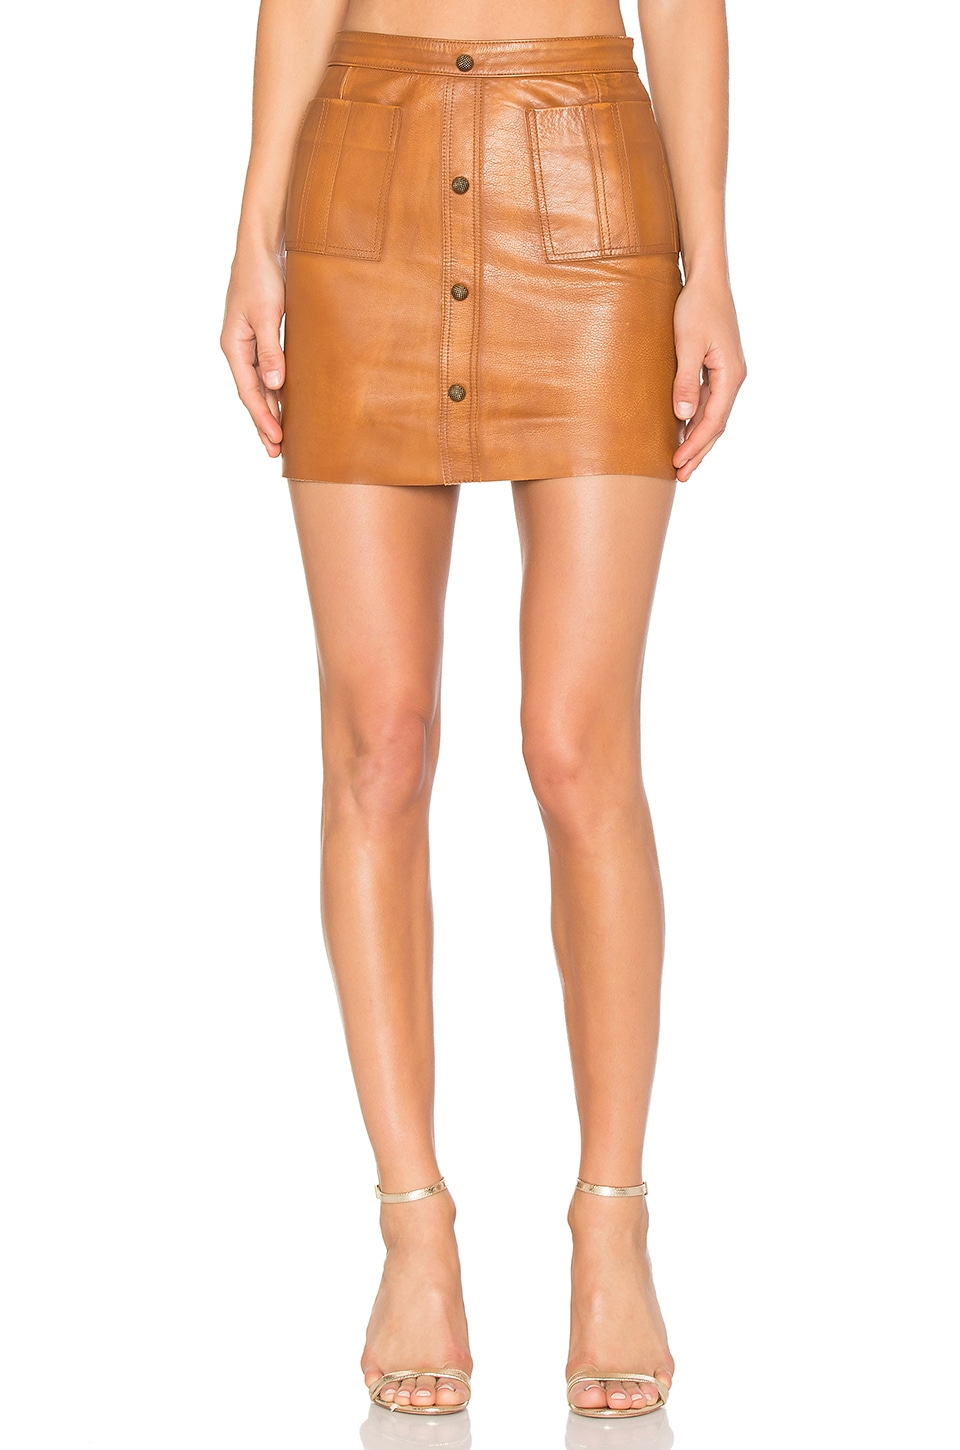 Aje Shrimpton Leather Mini Skirt in Tan